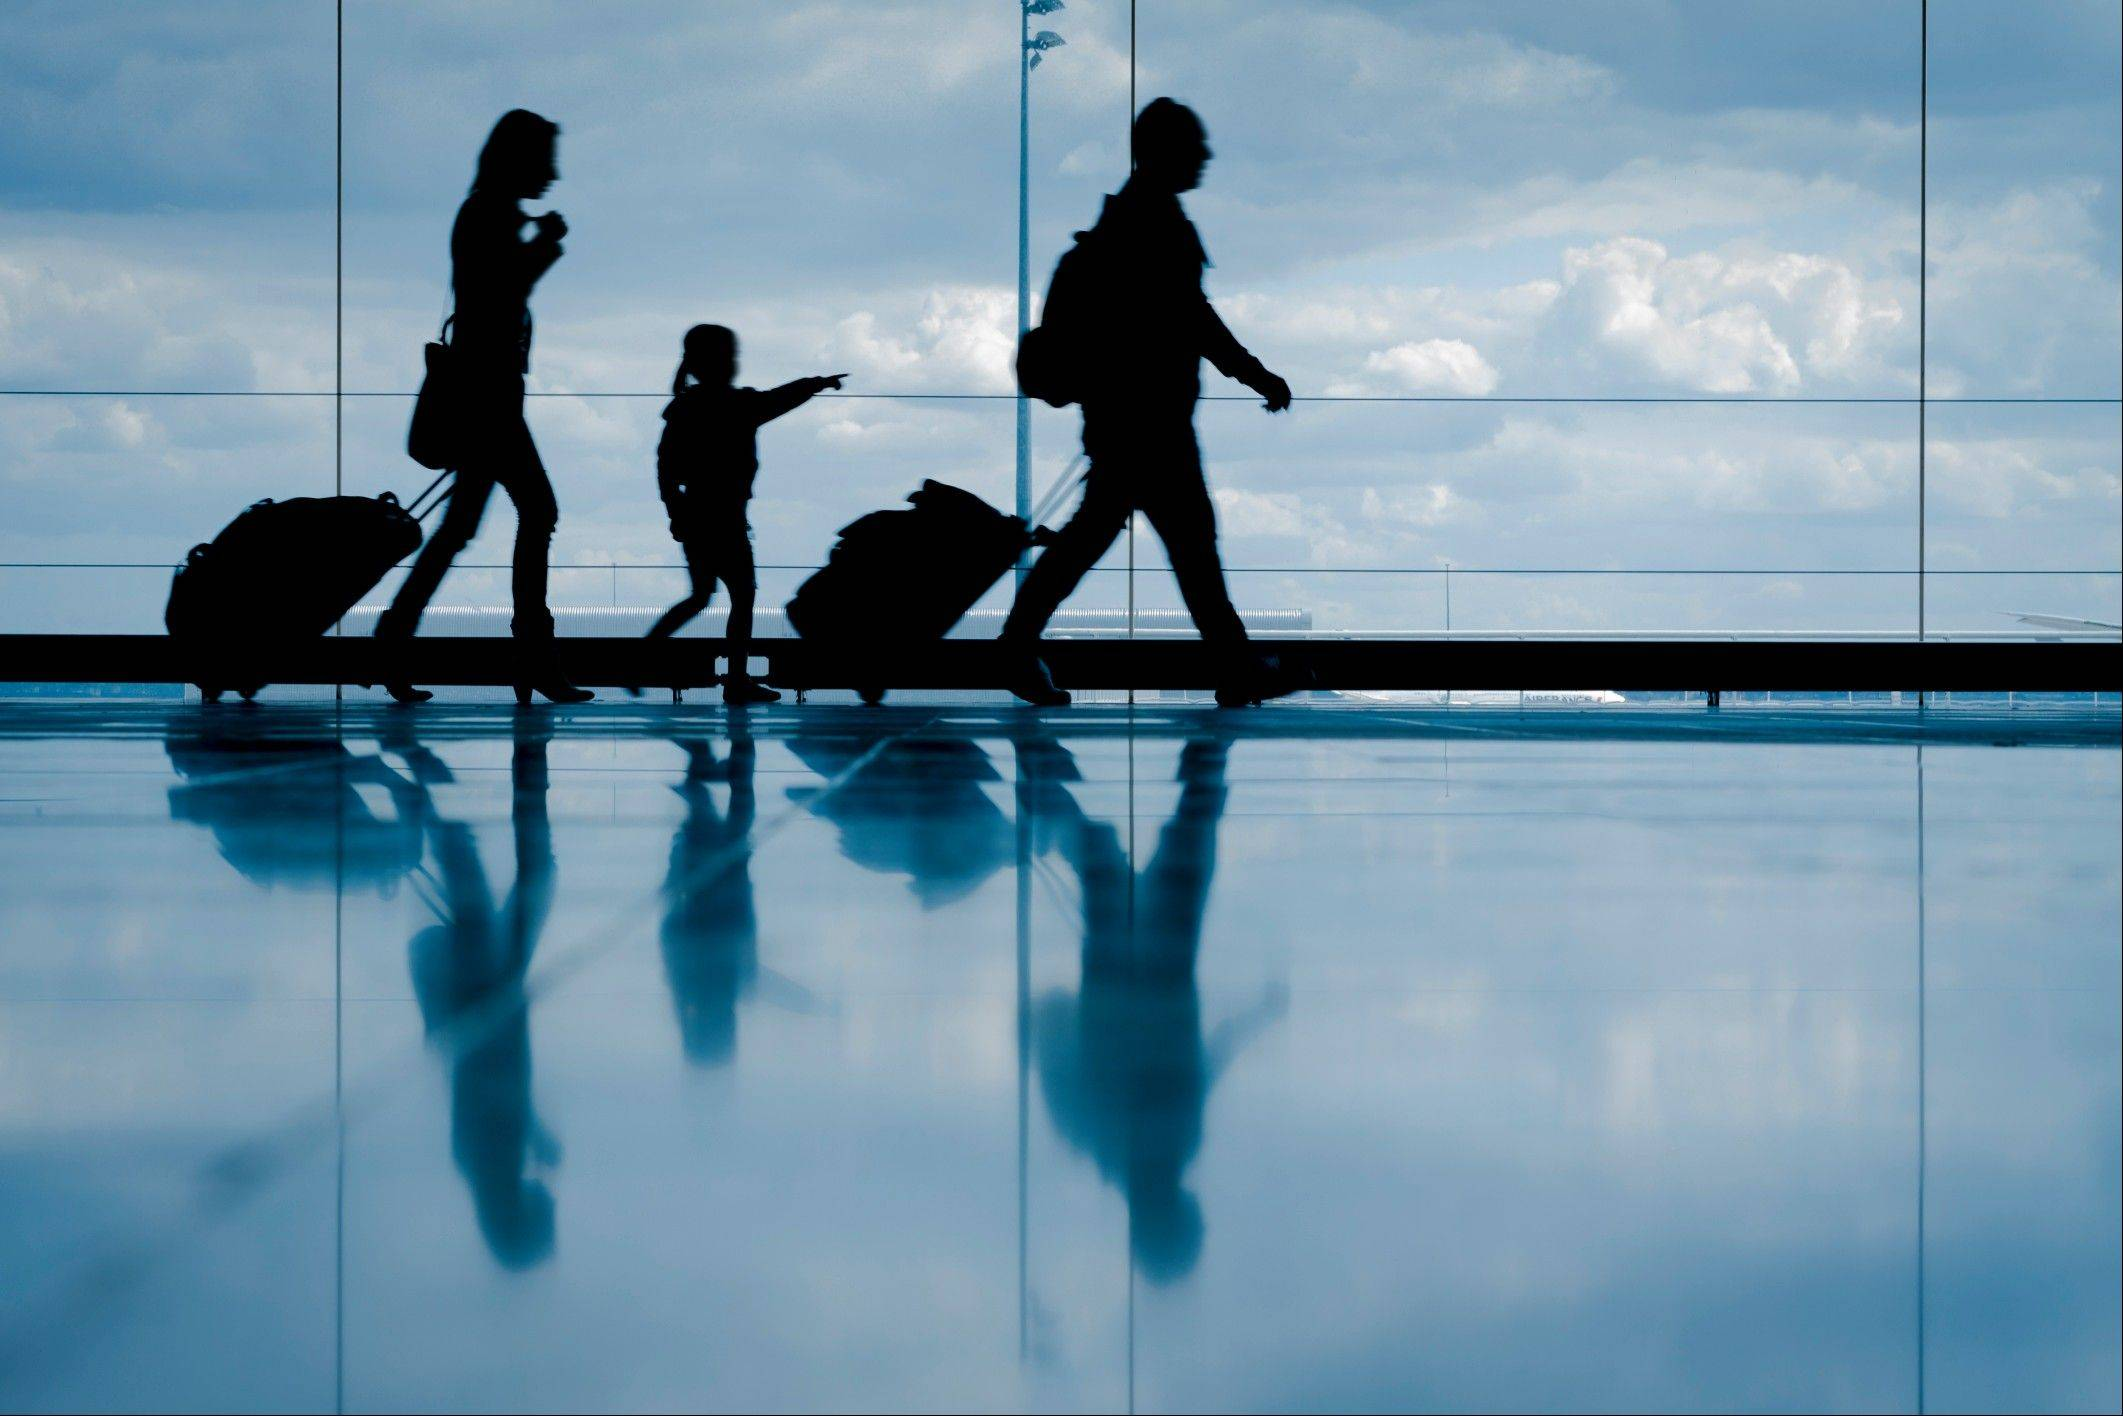 Families can help their kids with autism practice traveling in airports, which can be scary for kids with the disorder.